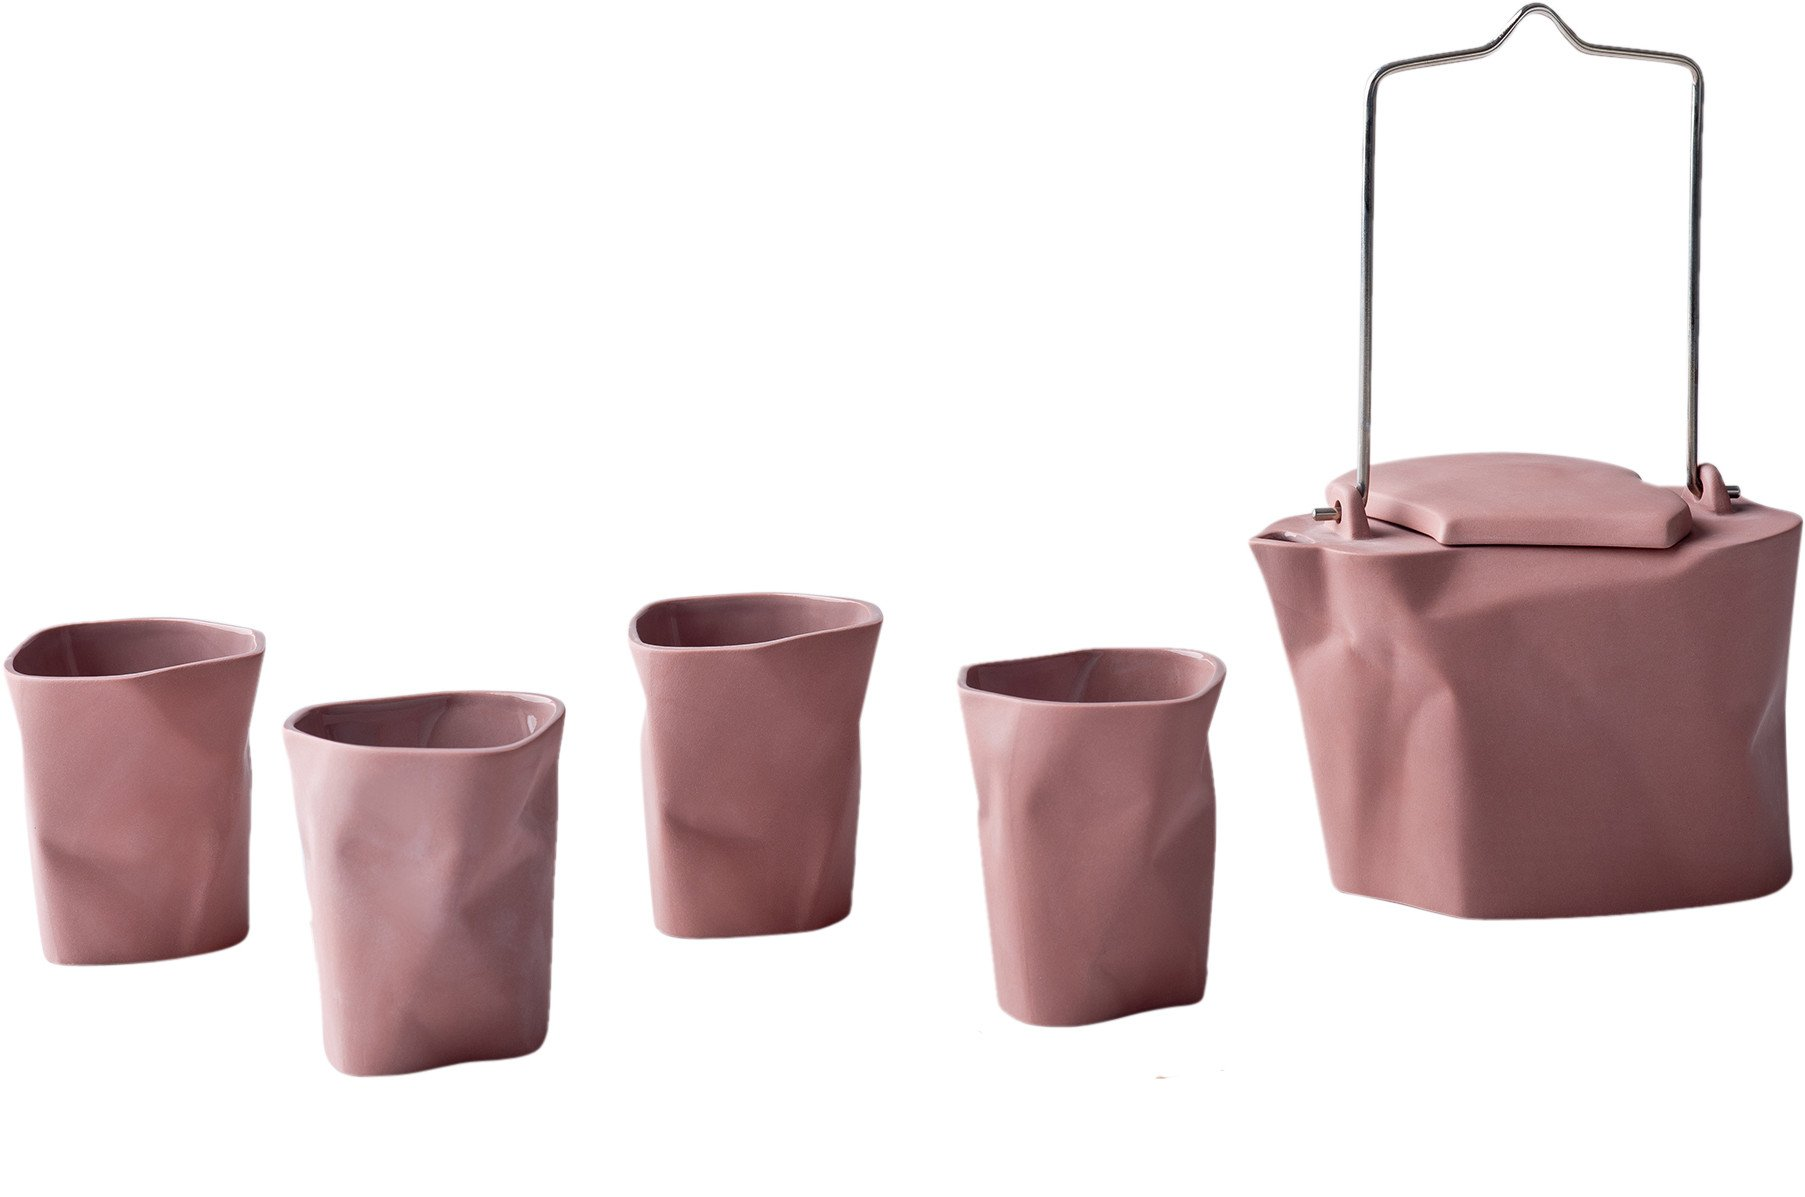 Pink Bent Tea set by Ćmielów Design Studio for Modus Design, Poland